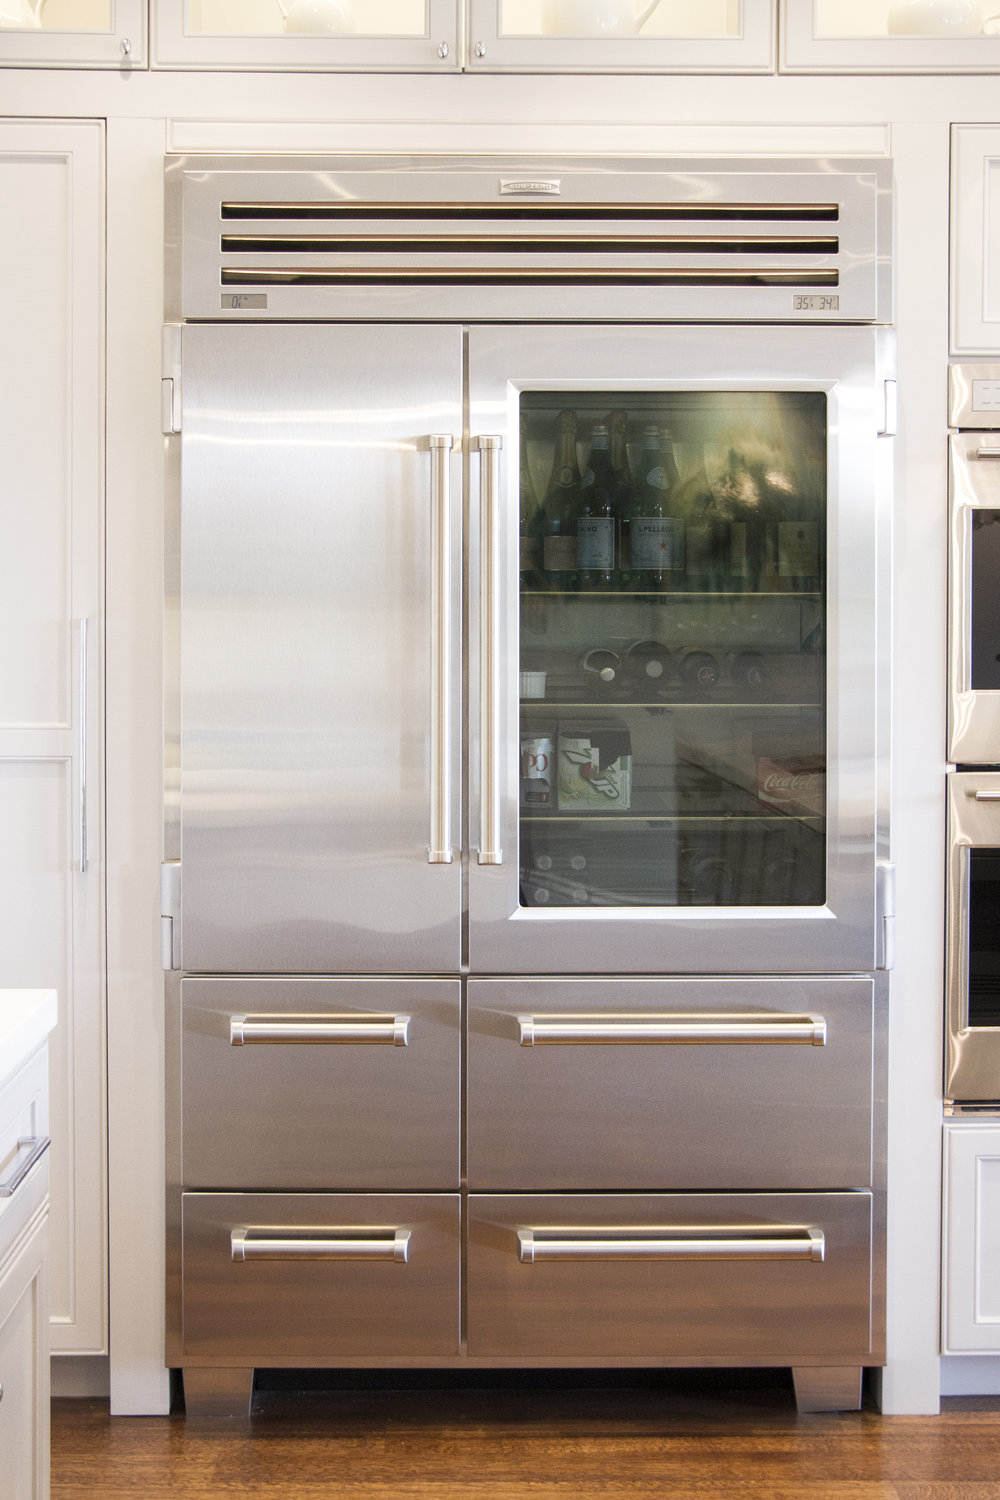 kitchen, fridge, stainless steel, white kitchen, simple, lighting, window cabinets, hardwood floor